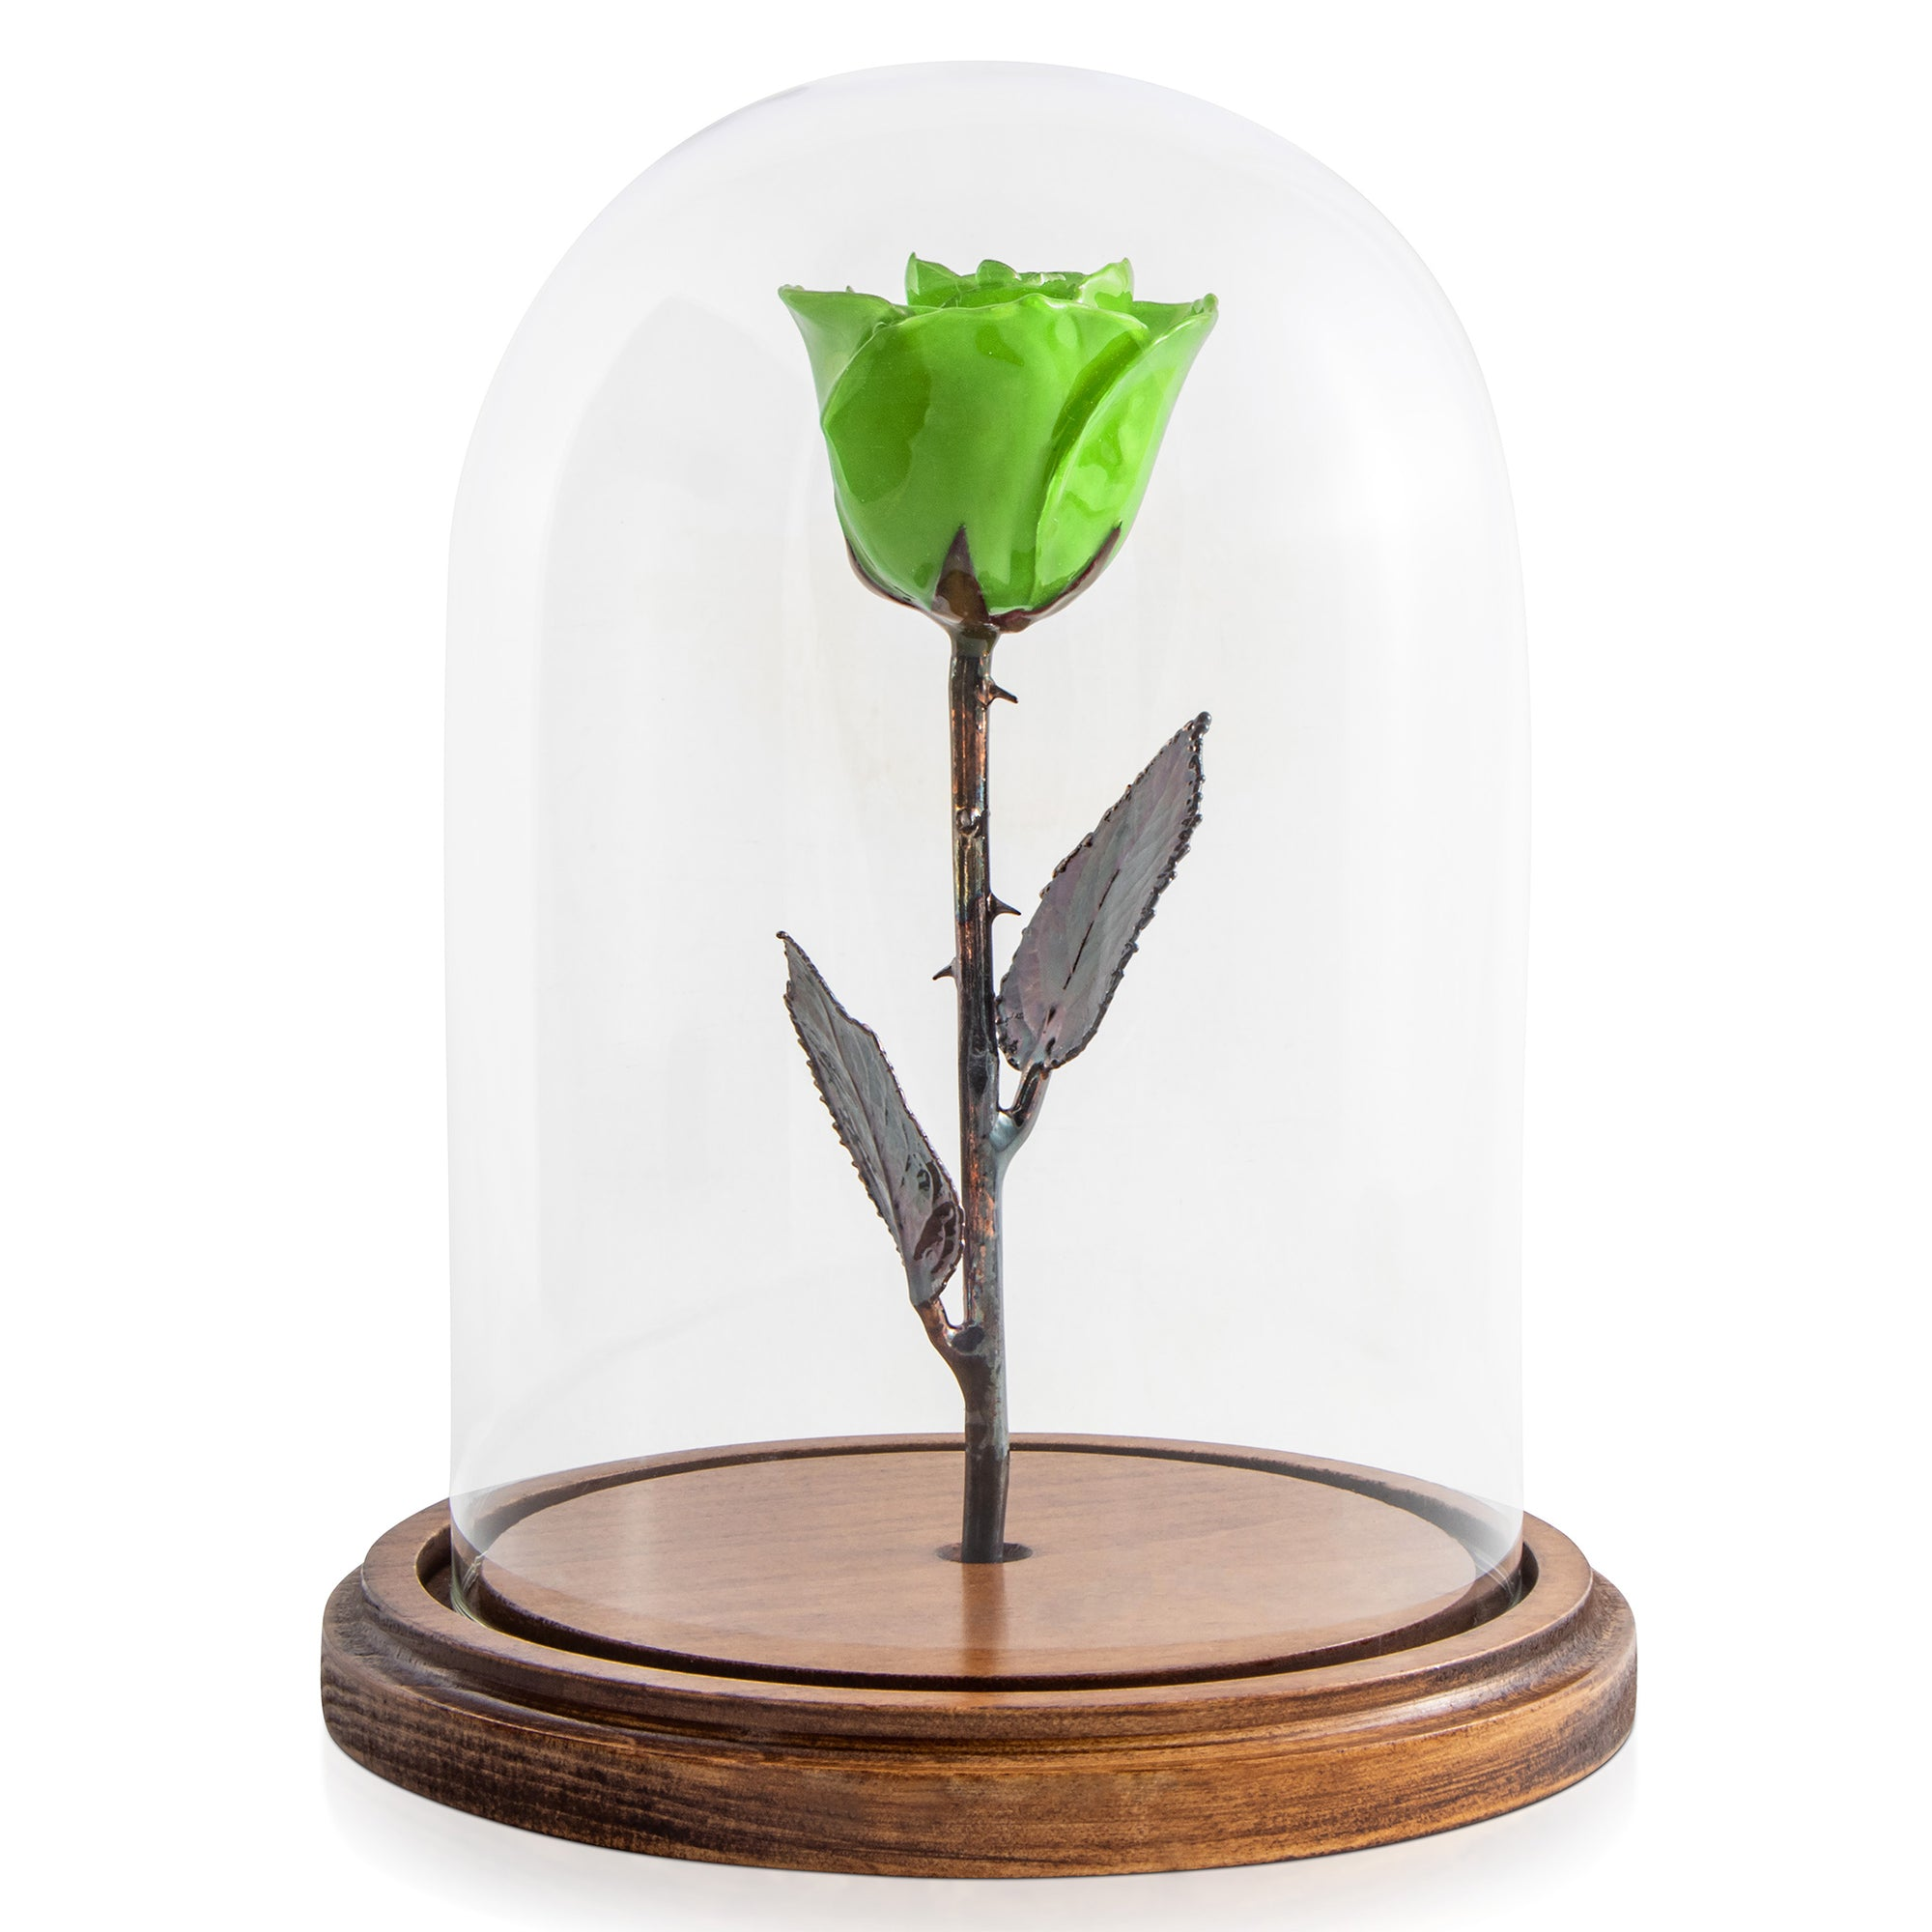 Green Enchanted Rose (aka Beauty & The Beast Rose) with Patina Copper Stem Mounted to A Hand Turned Solid Wood Base under a glass dome.